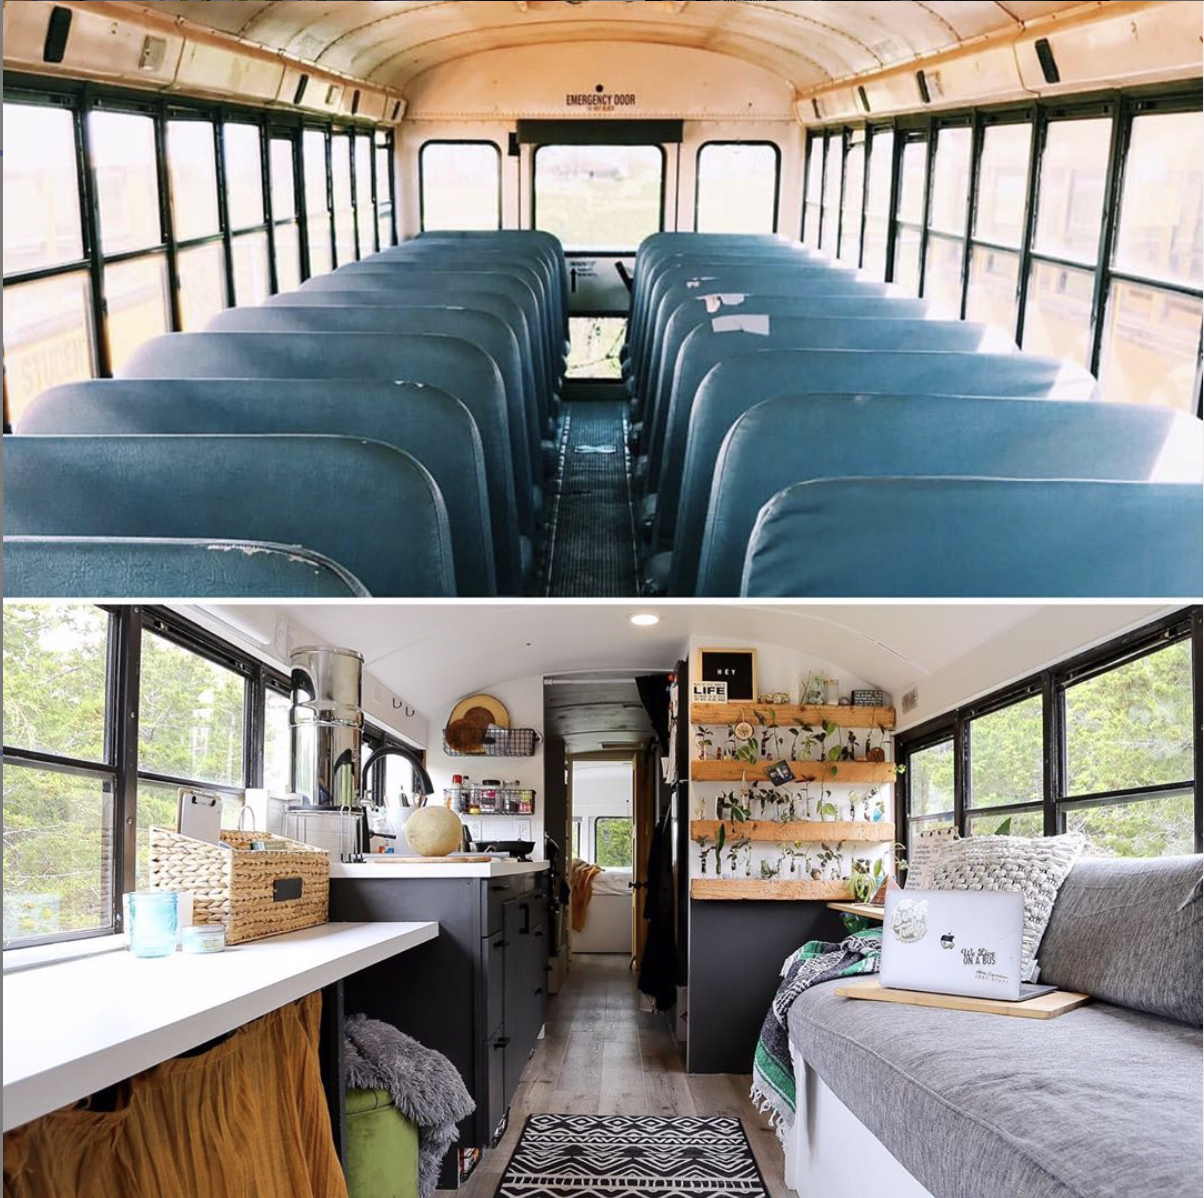 Big Booty Judy school bus before and after